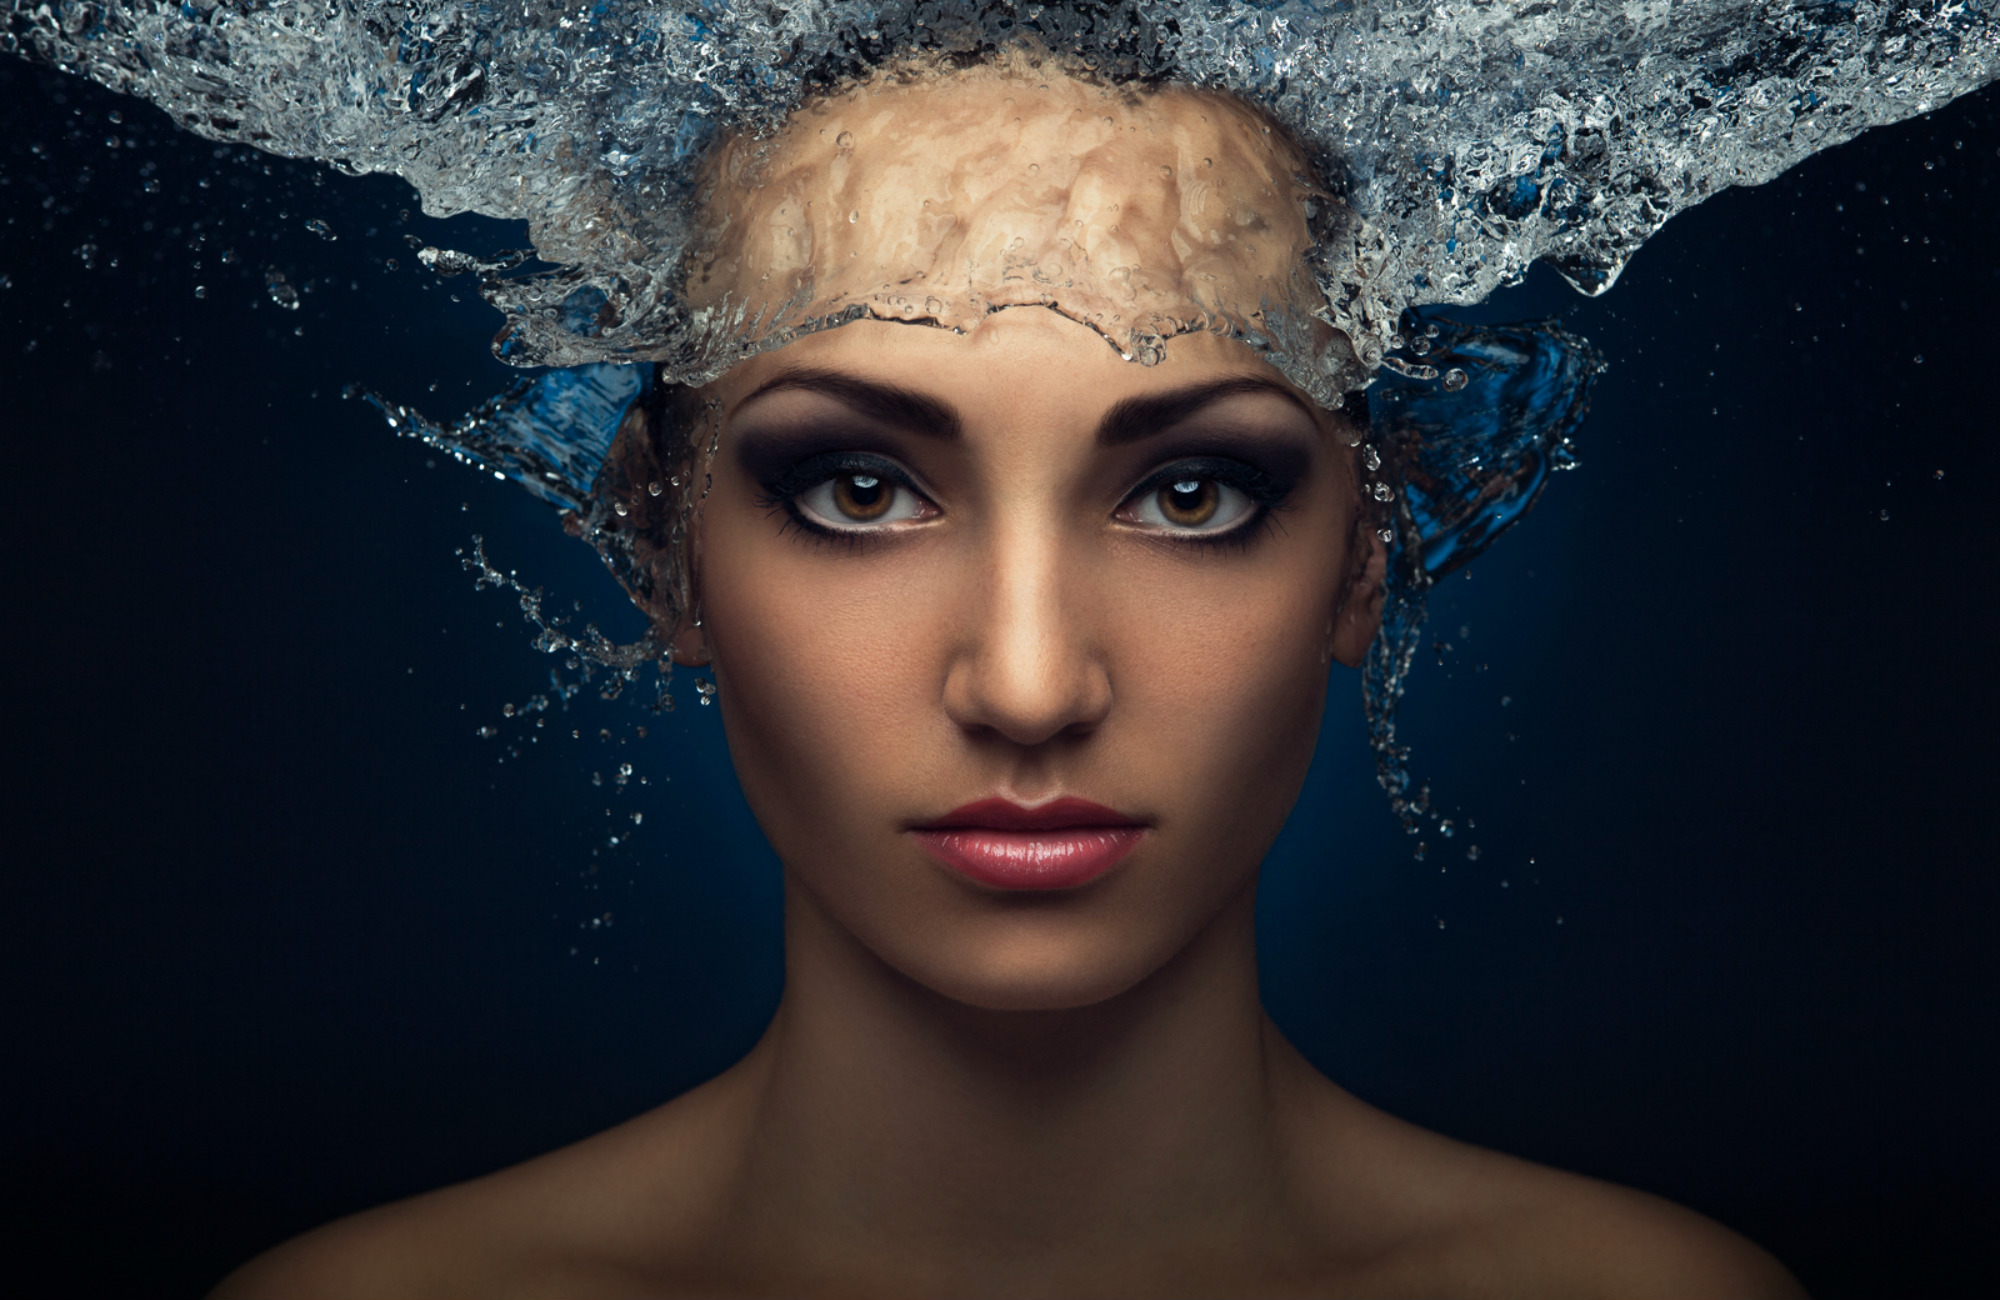 evgeni kolesnik photography surreal portraits ukraine water